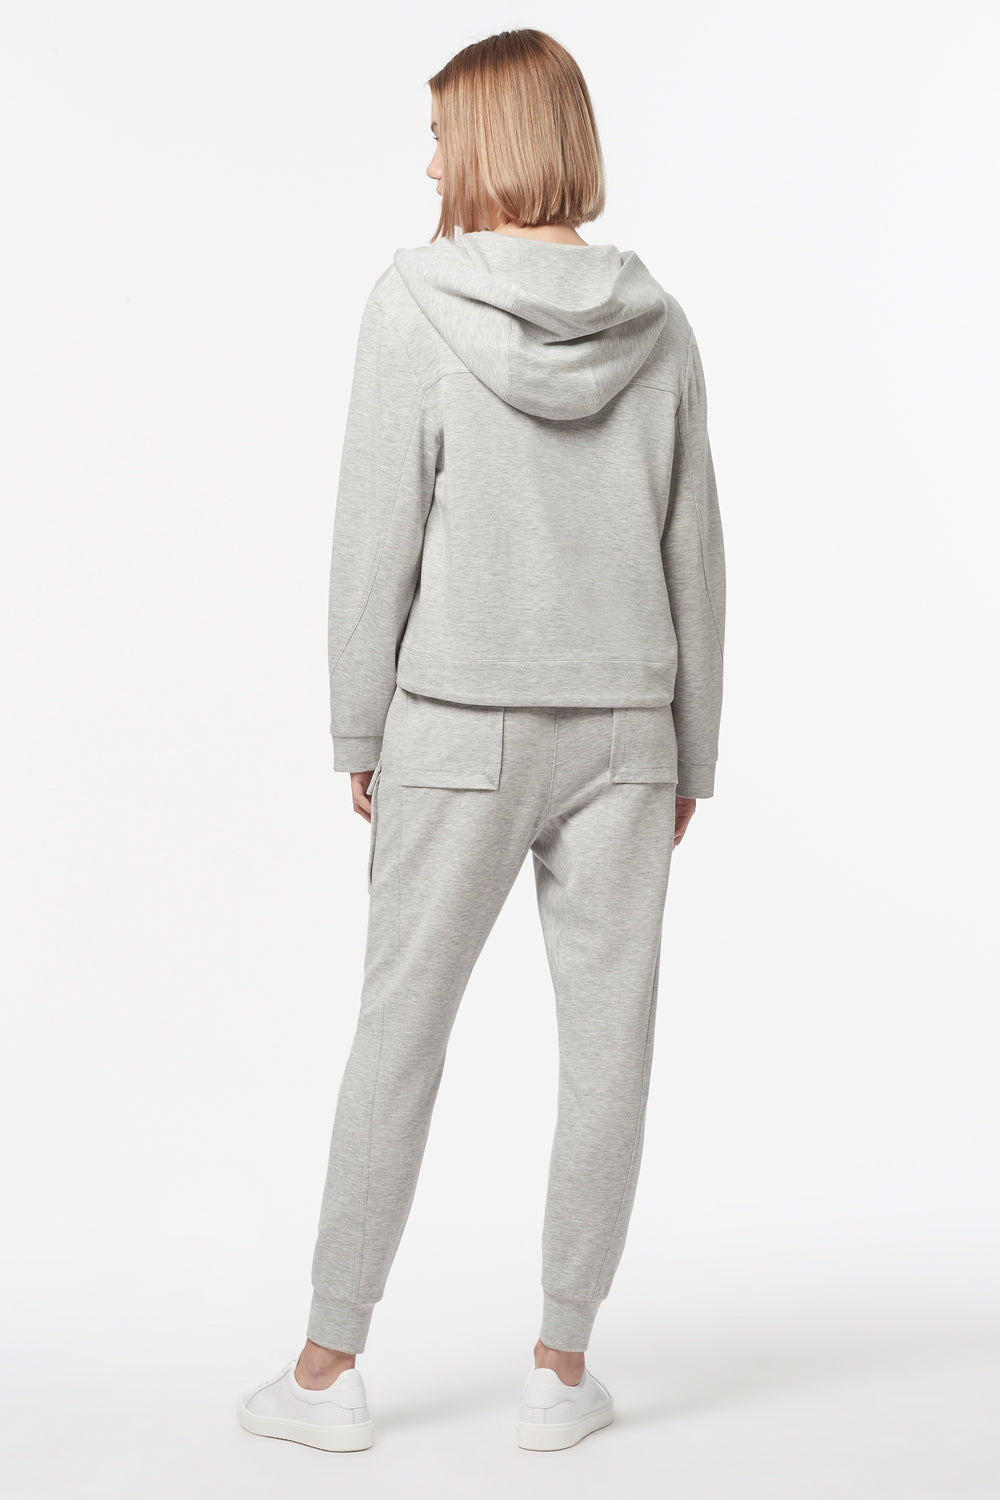 LOUNGE ACT HOODIE TOP